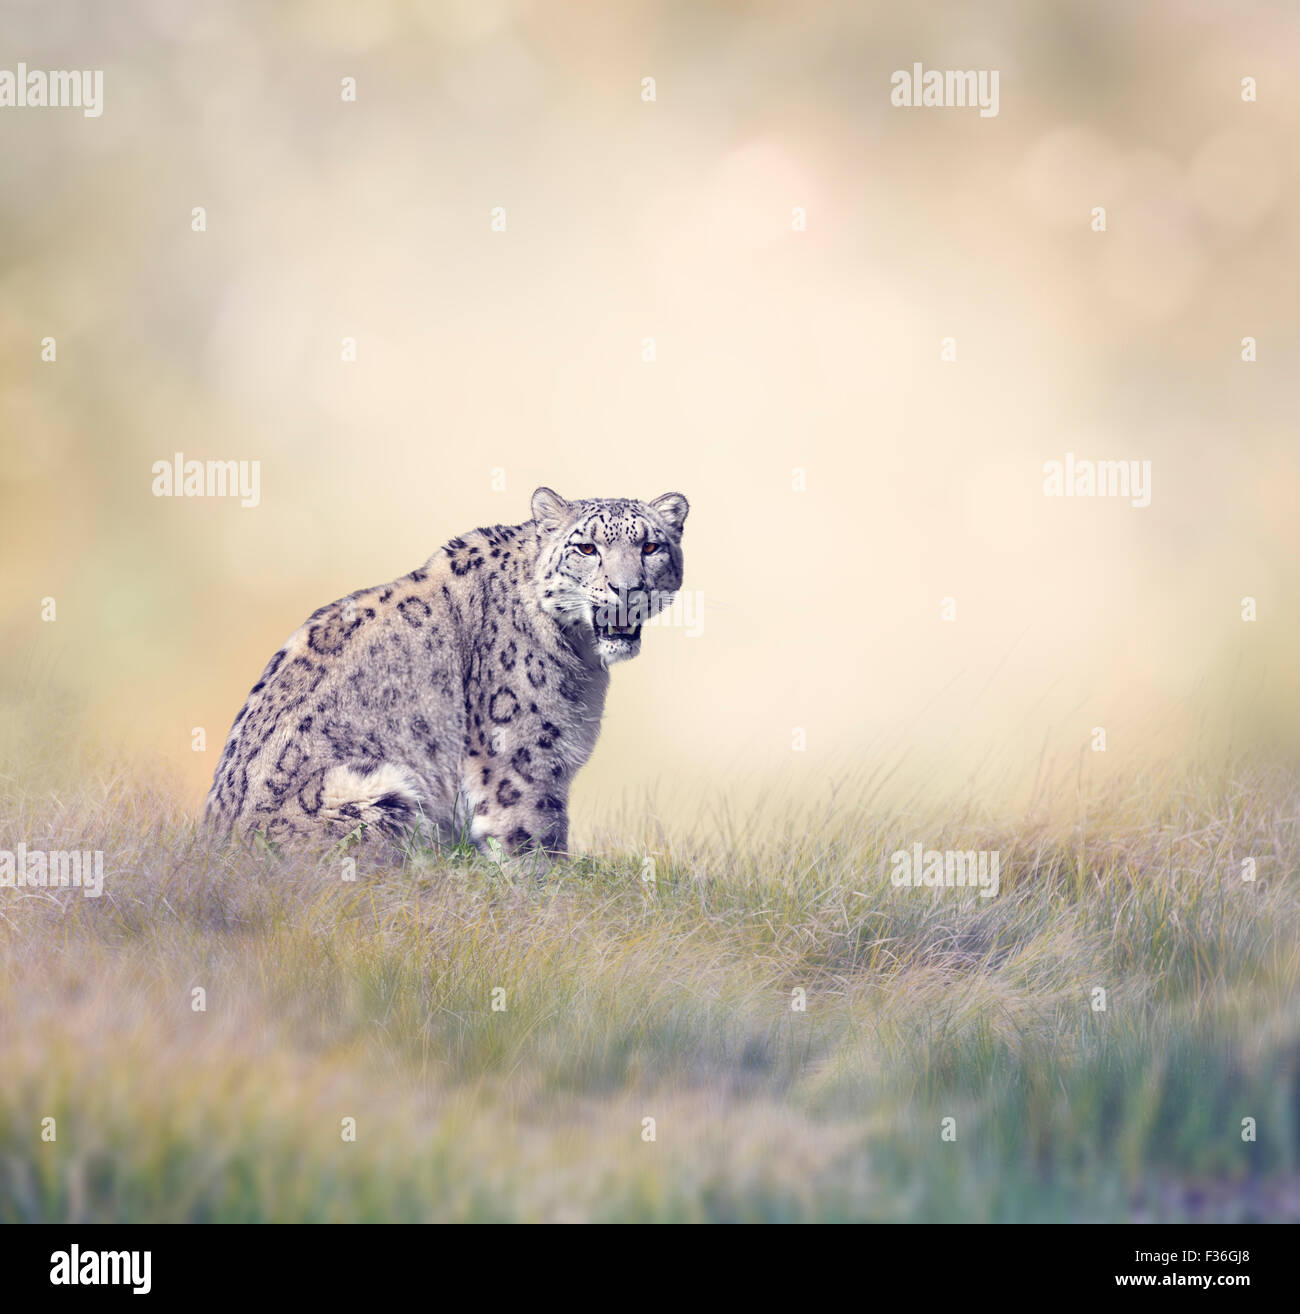 Snow Leopard in the Grass - Stock Image